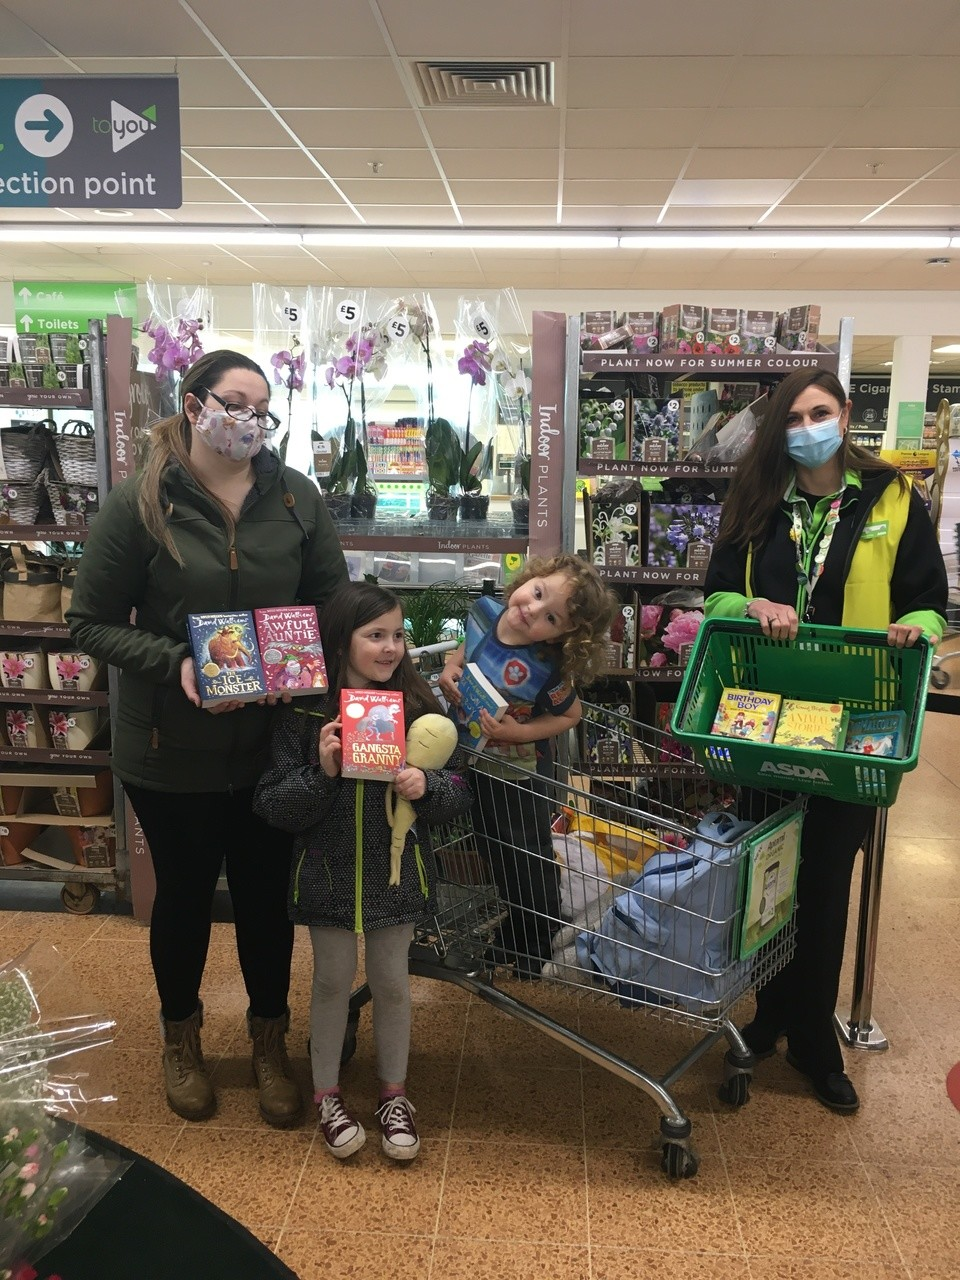 Book donation for Our Lady of Lourdes School | Asda Longwell Green